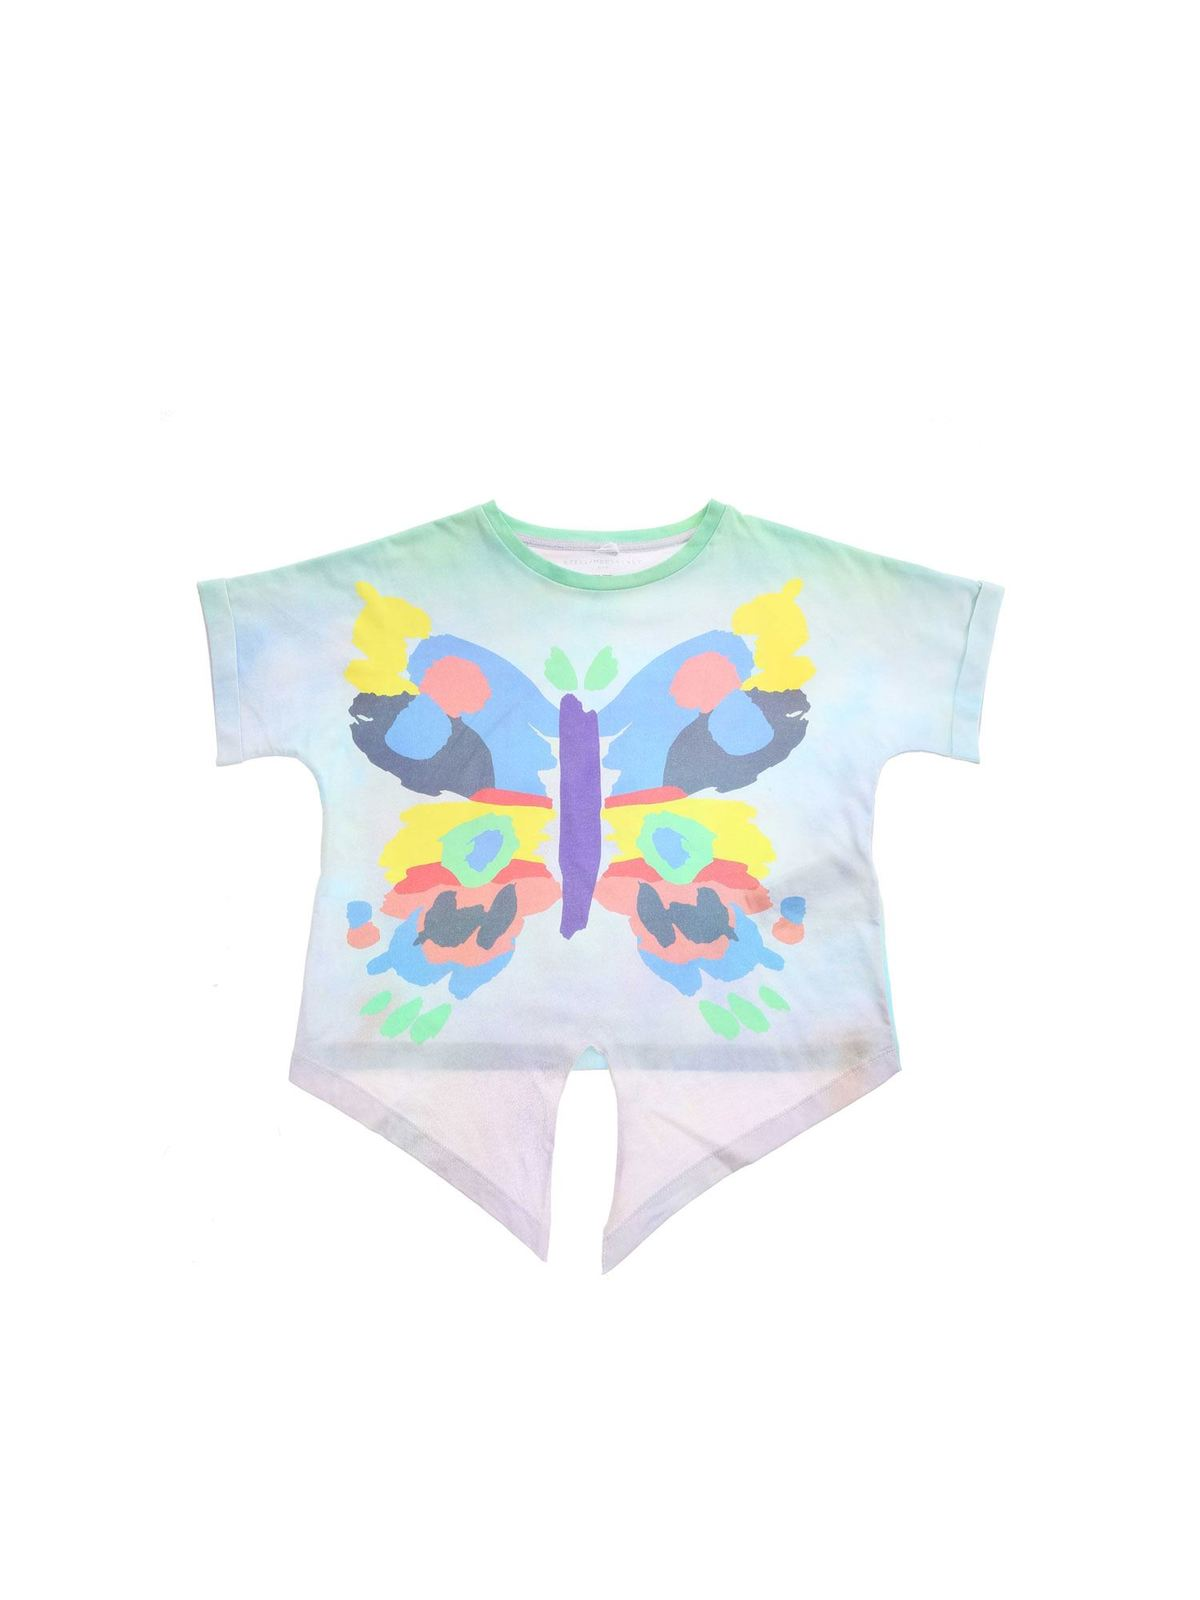 Stella Mccartney Cottons BUTTERFLY PRINT MULTICOLOR T-SHIRT